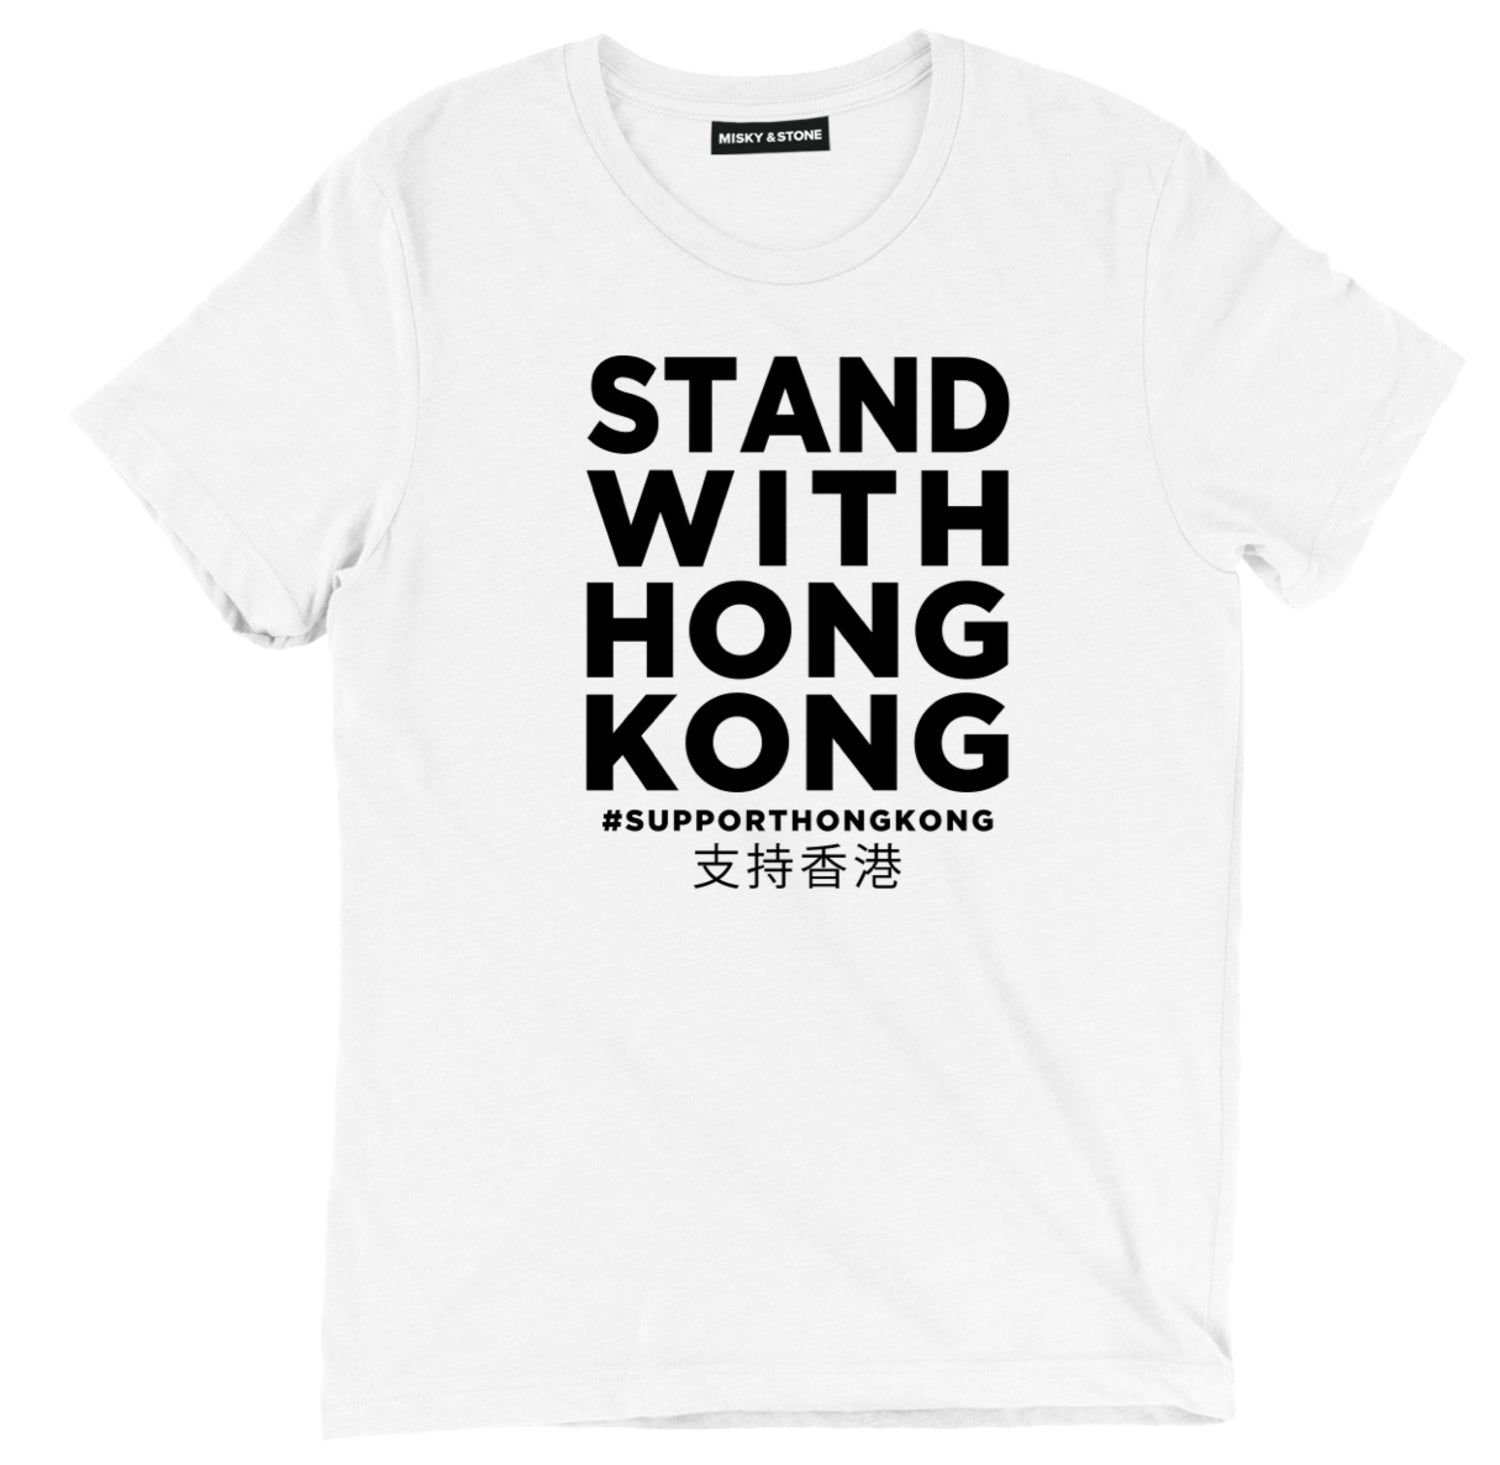 Free Hong Kong T-Shirt, support hong kong t shirt, Stand with hong kong political tee shirts, Hong Kong Strong political clothing, Stay Strong political apparel, Hong Kong political merch